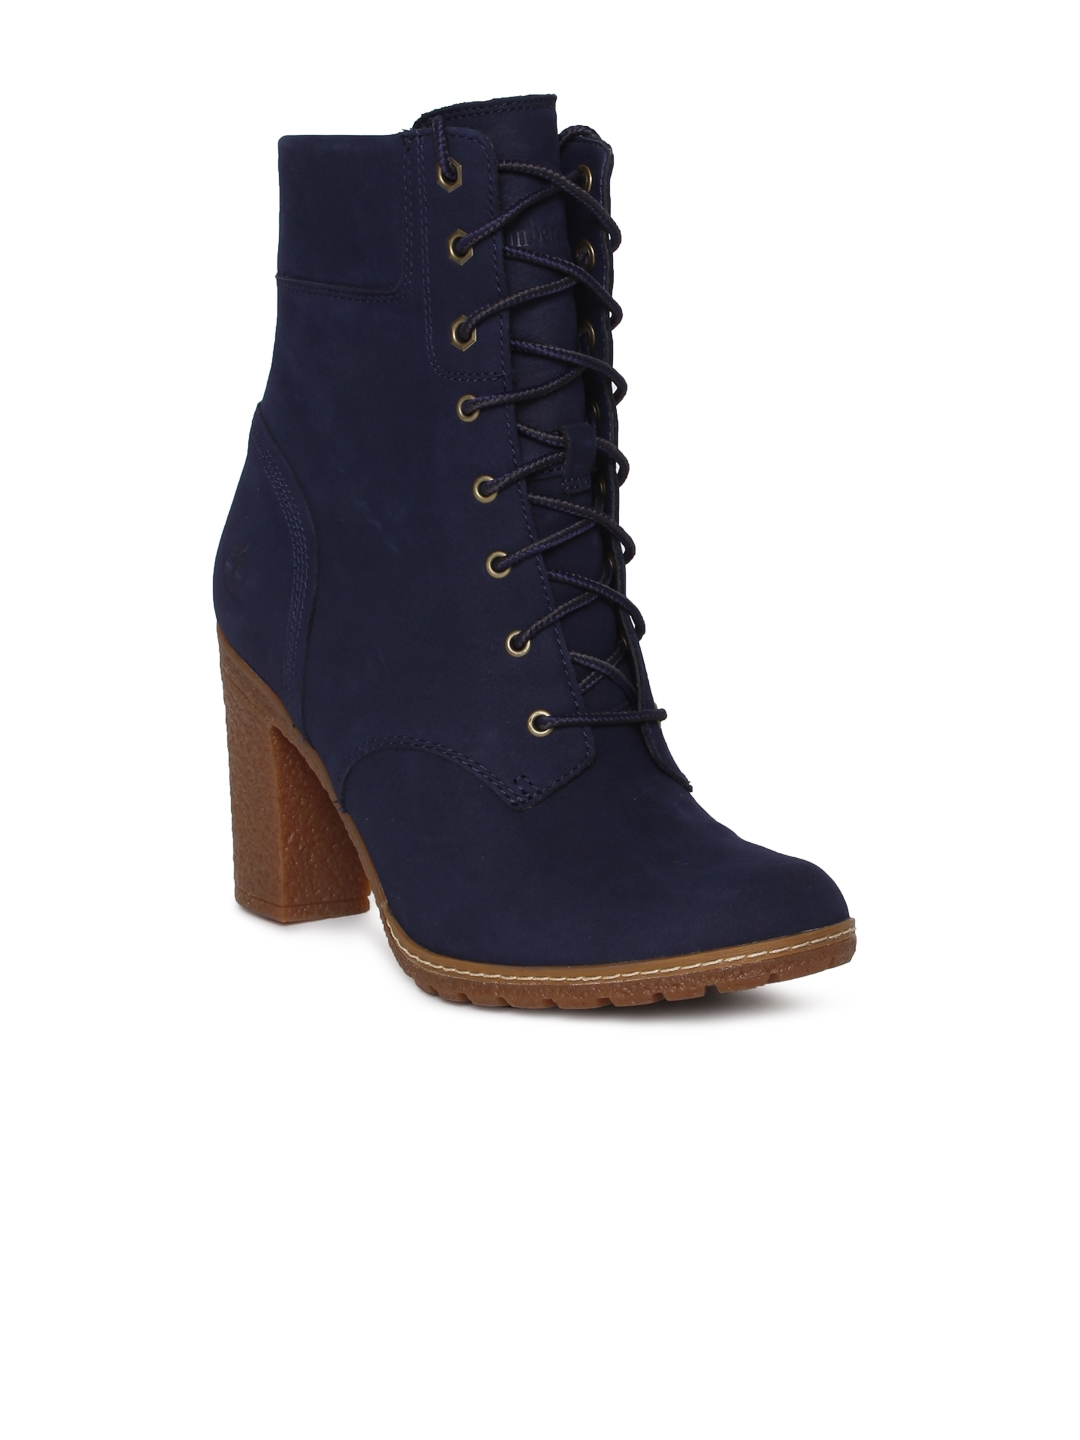 3783eb9f2d07 Buy Timberland Women Navy Blue Solid GLANCY Heeled Boots - Heels for ...